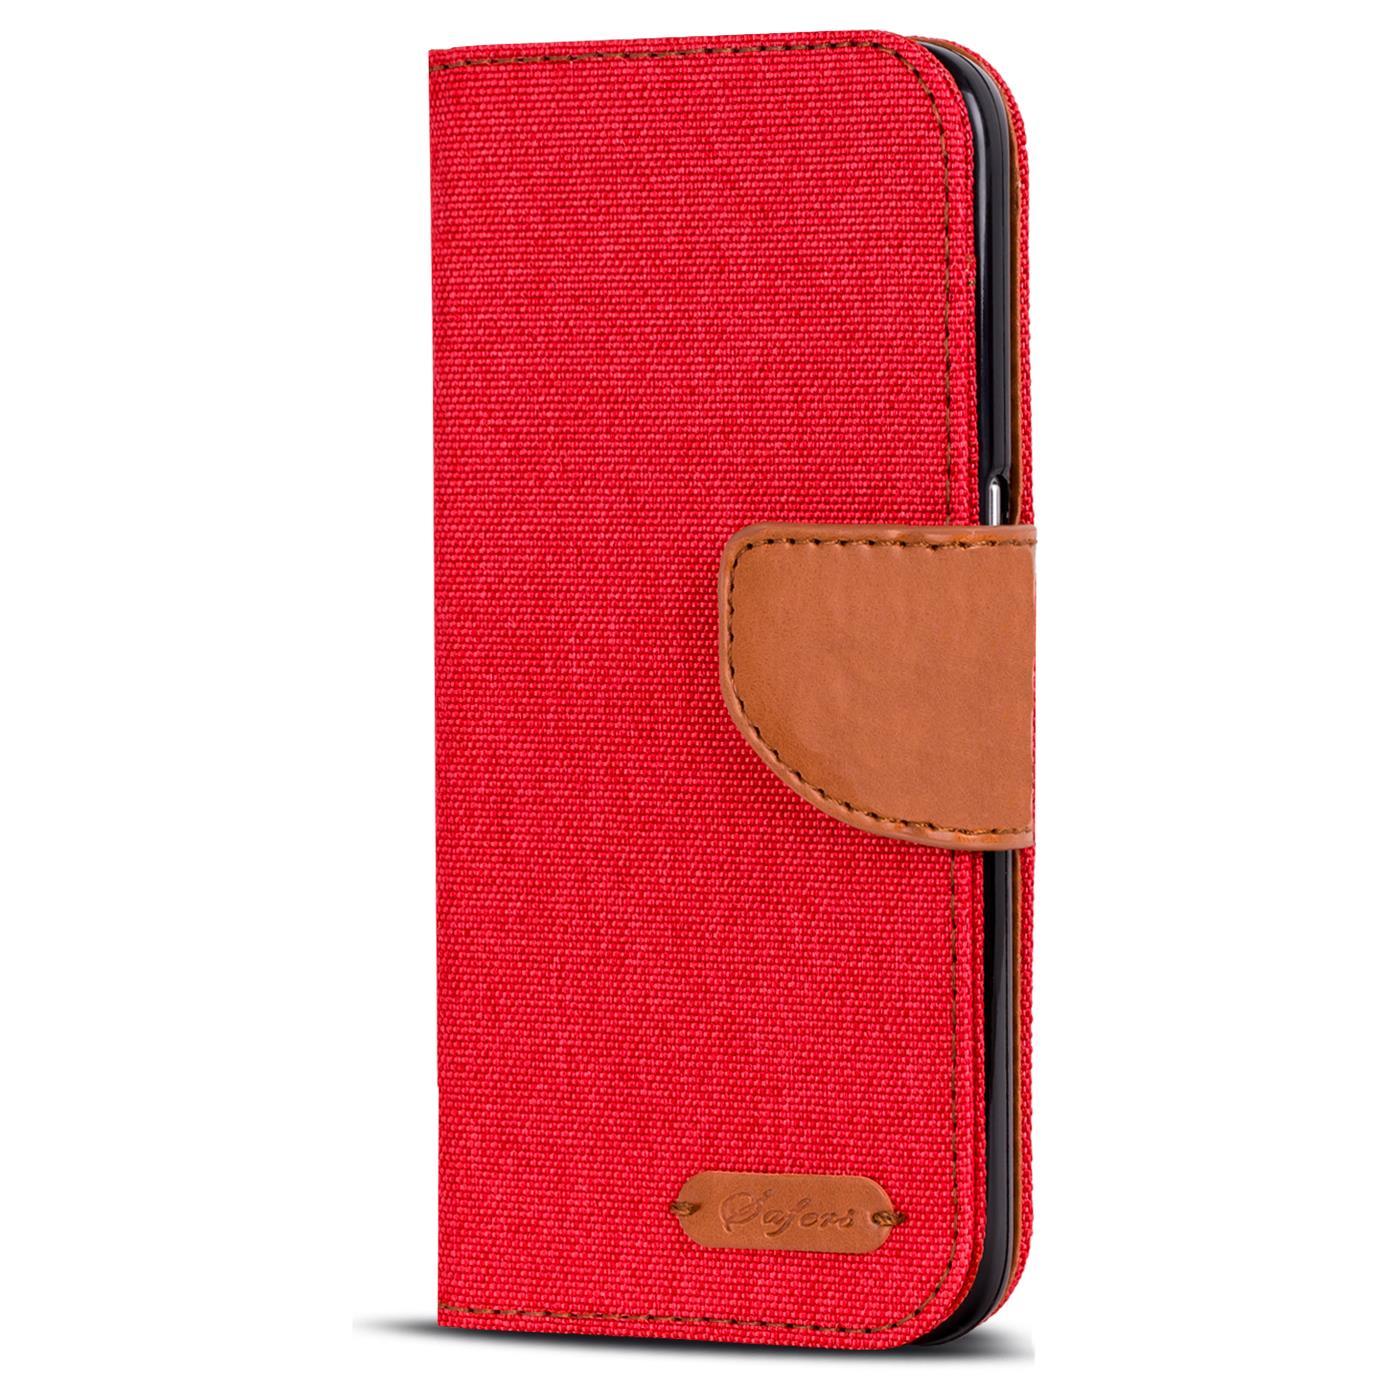 Samsung-Galaxy-S8-Plus-Phone-PU-Leather-Magnetic-Flip-Case-Wallet-Denim-Cover thumbnail 14